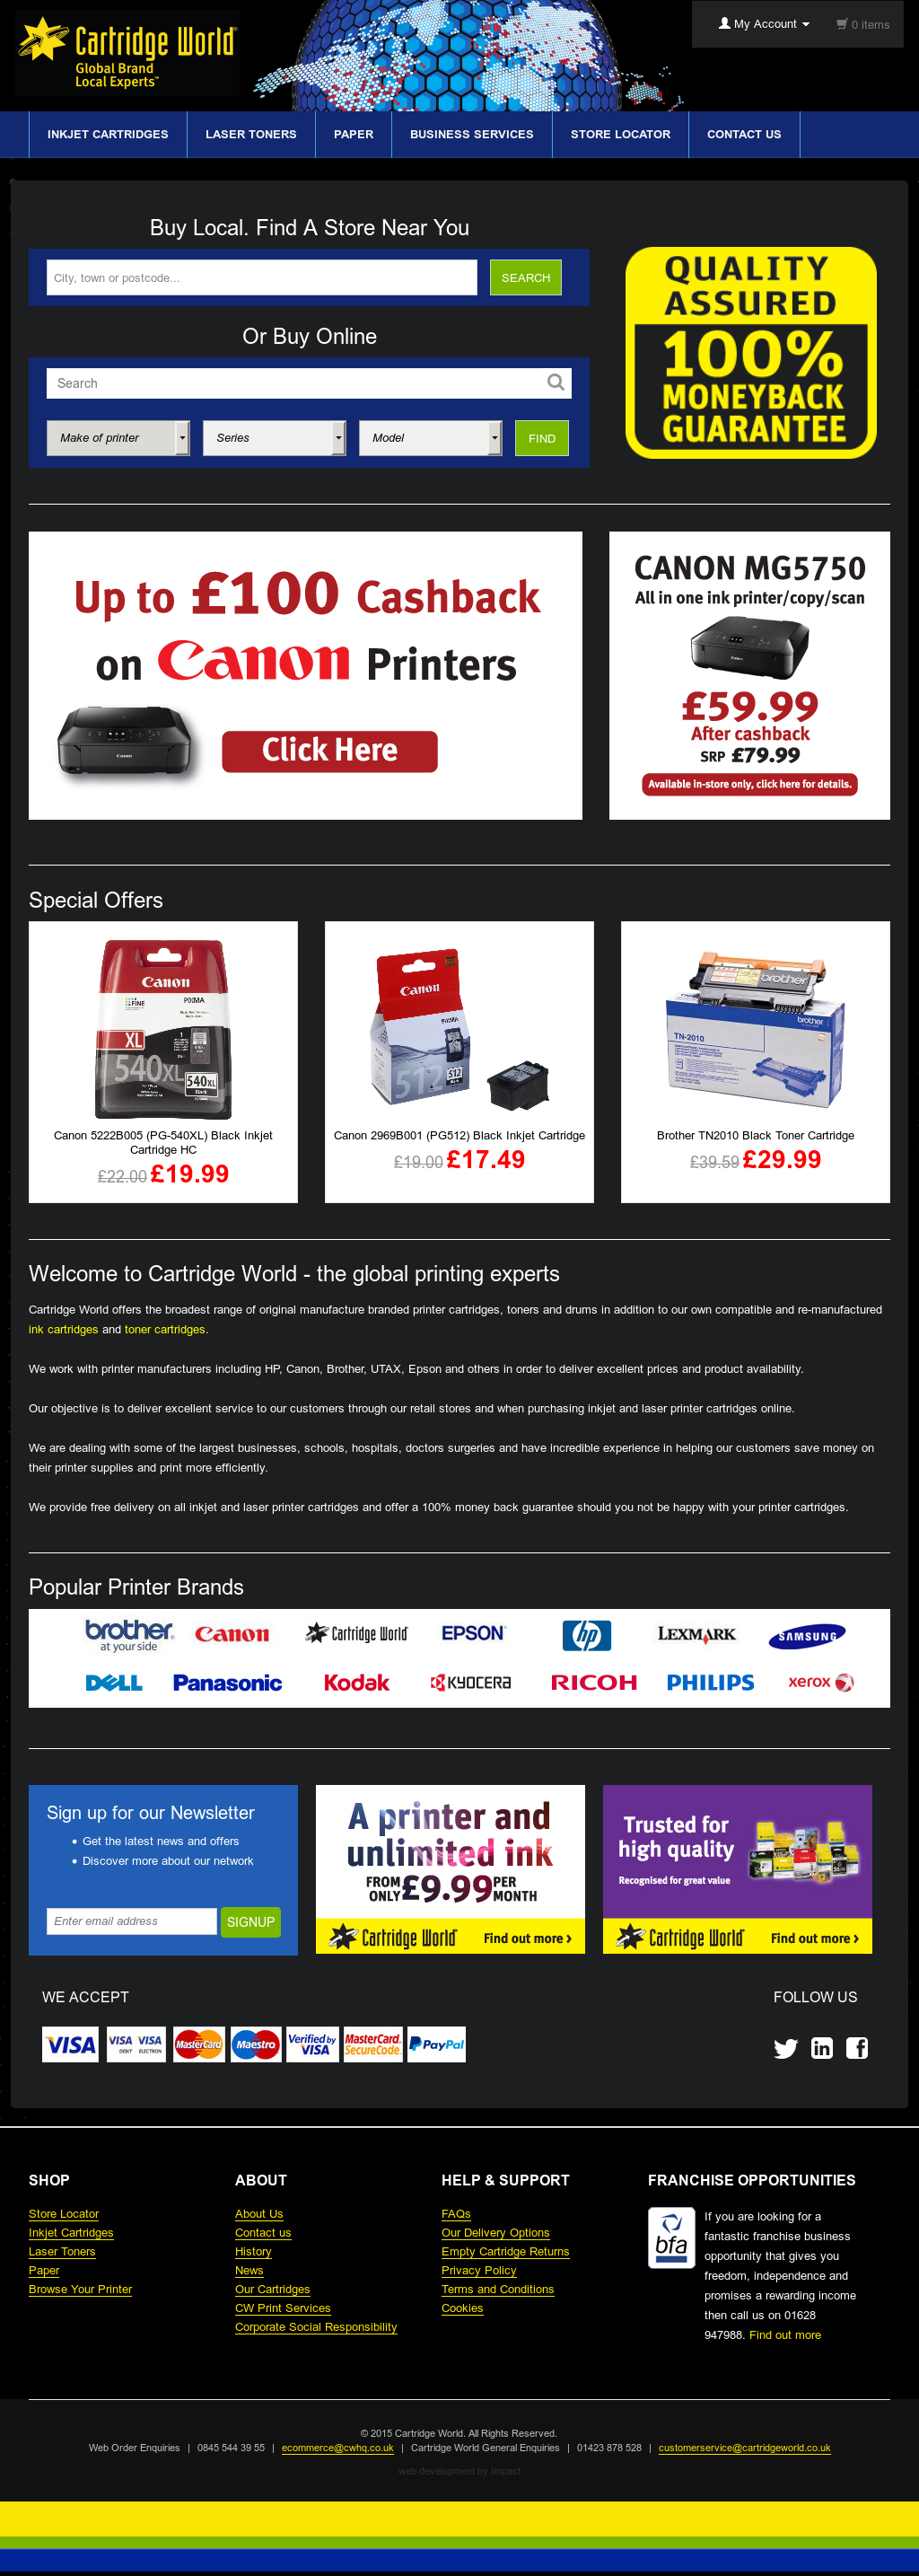 Cartridgeworld Competitors, Revenue and Employees - Owler Company